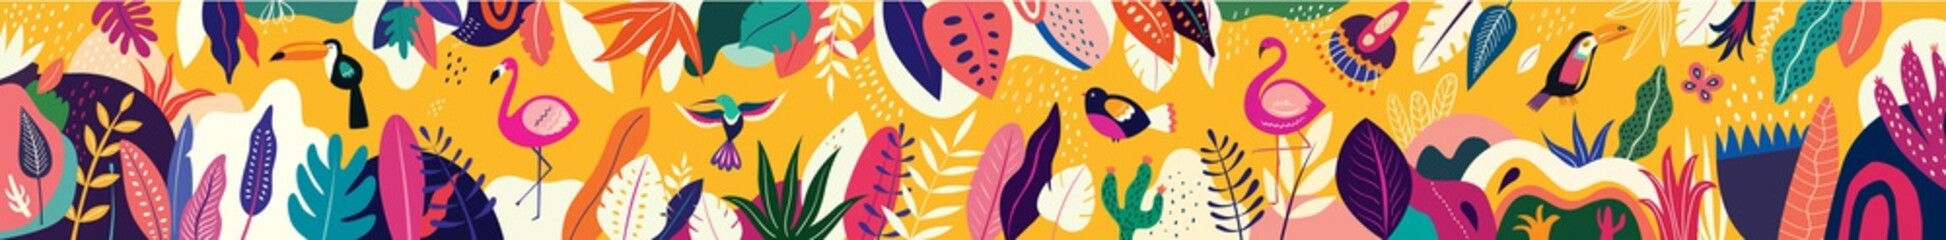 Fototapete - Animals big collection. Animals of Brazil. Vector colorful set of illustrations with tropical flowers, leaves, monkey, flamingo, and birds. Brazil tropical pattern. Rio de janeiro pattern